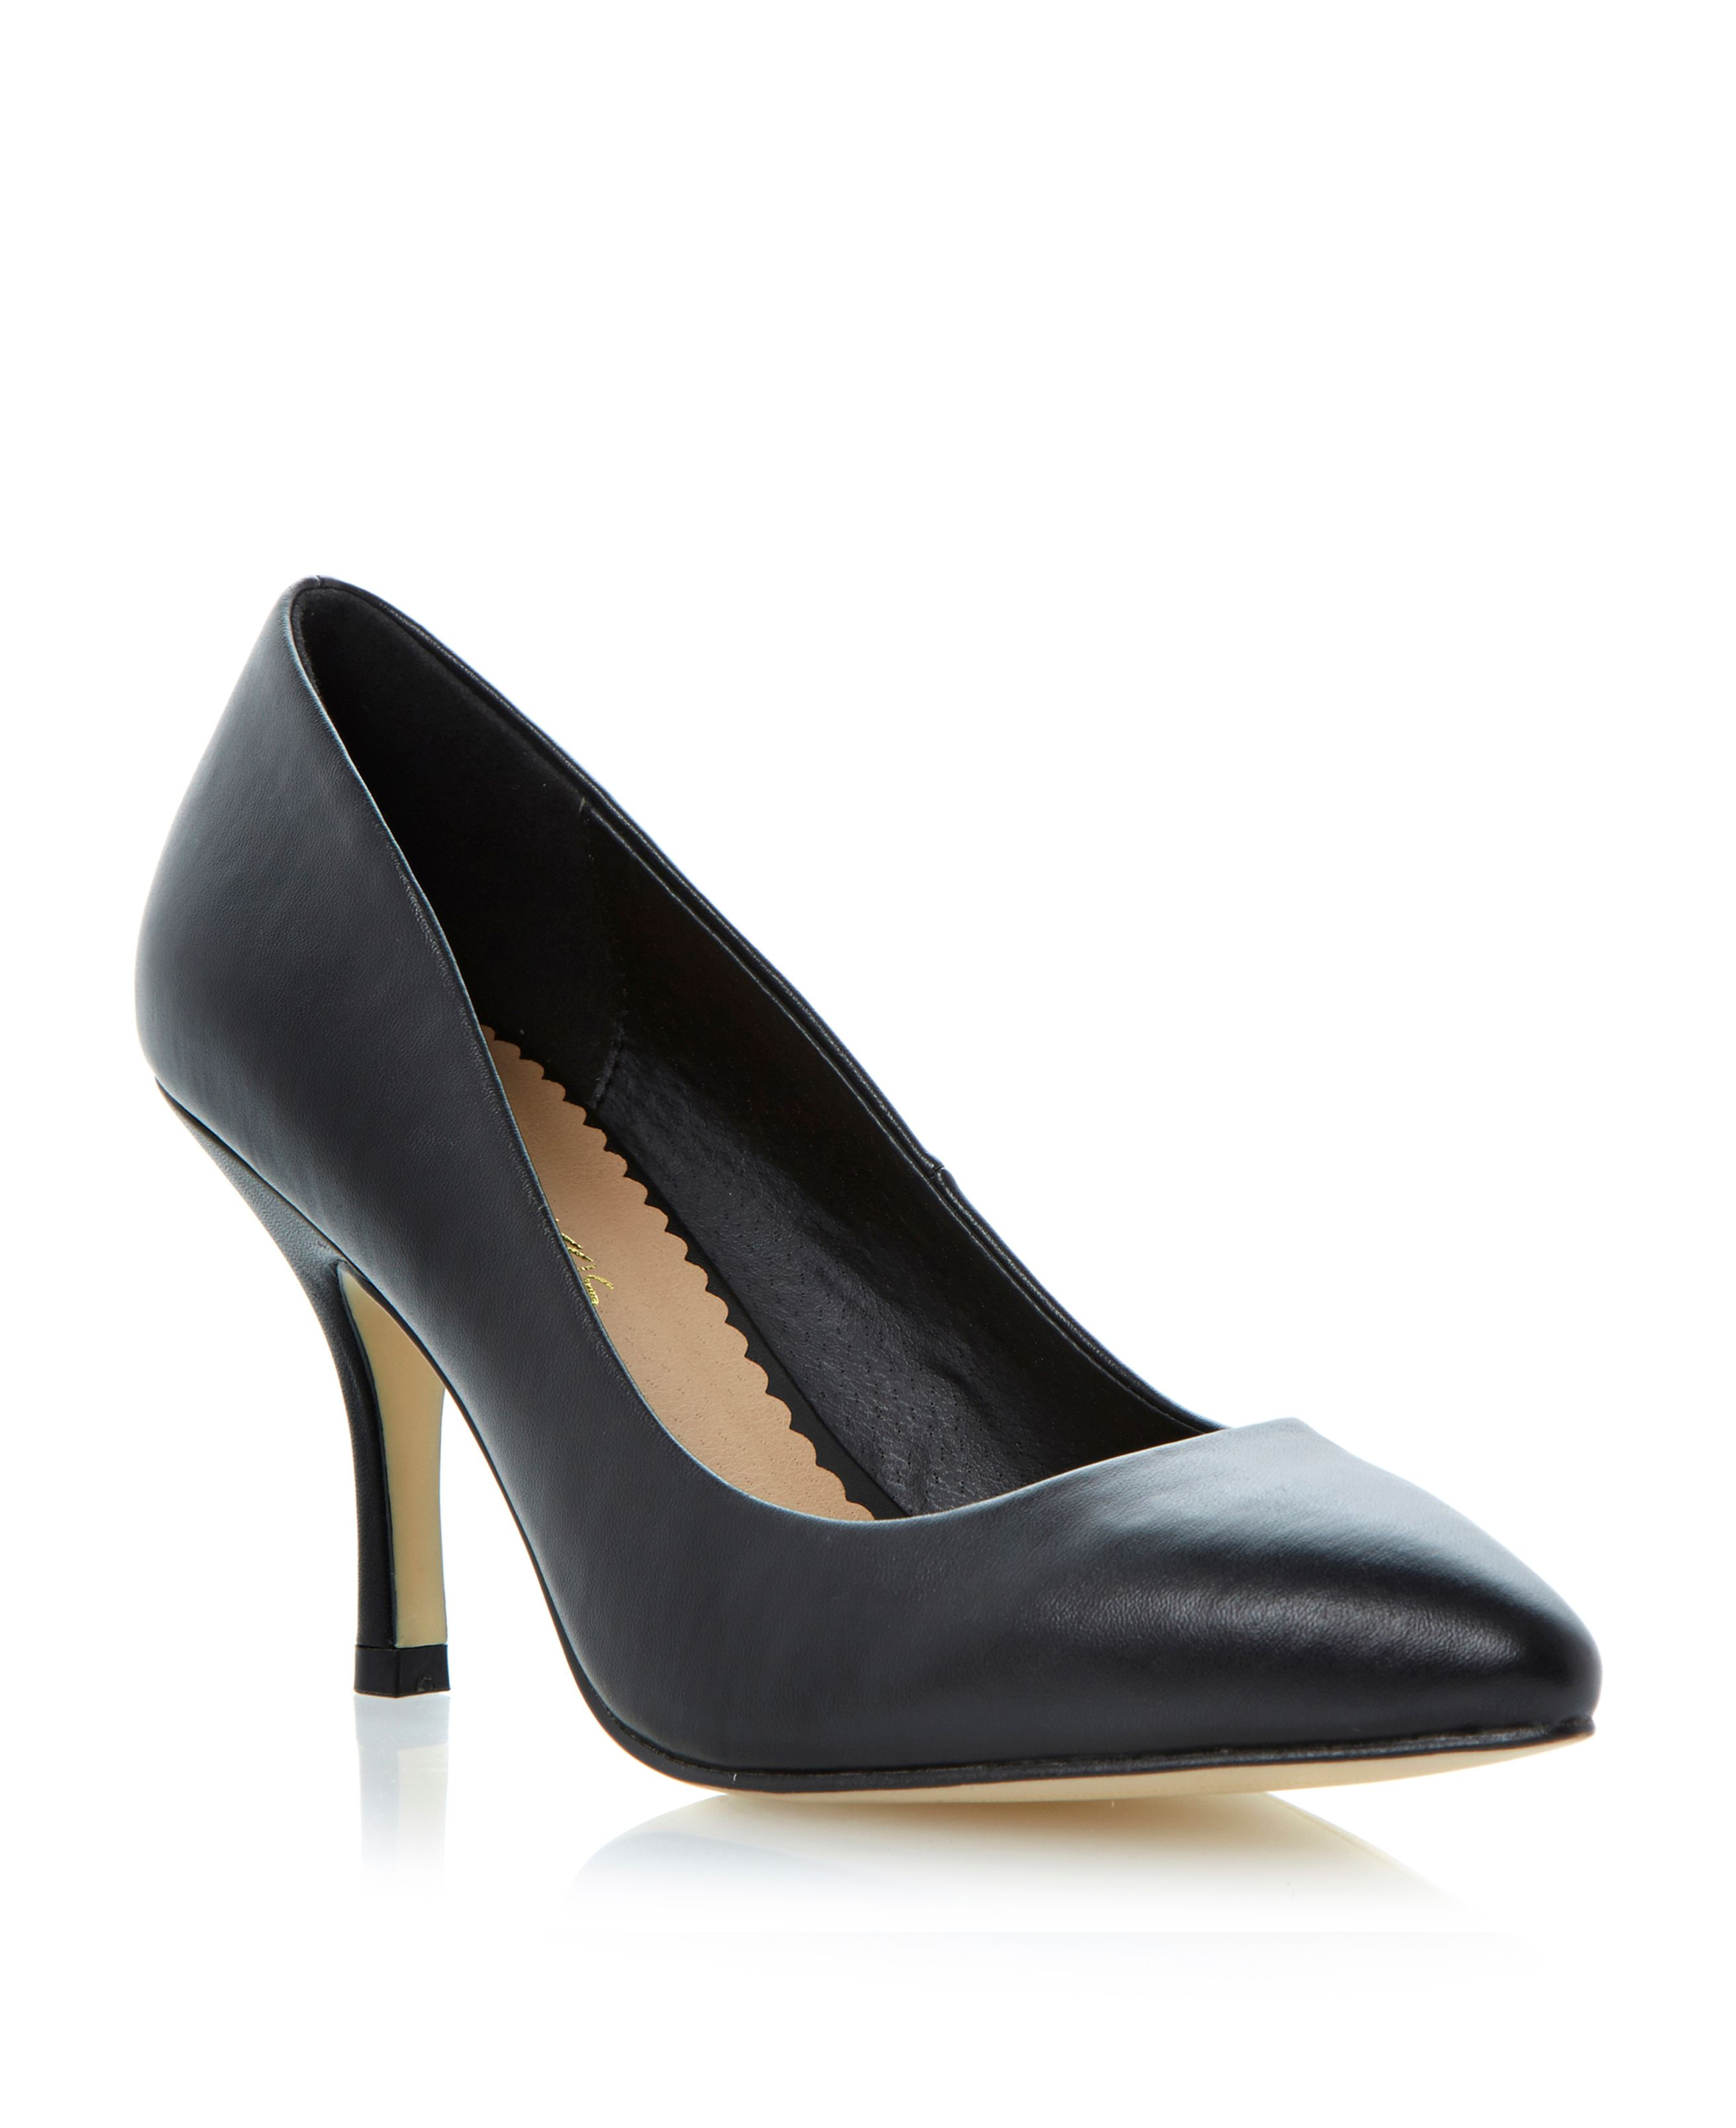 Blayke pointed toe stiletto zip court shoes